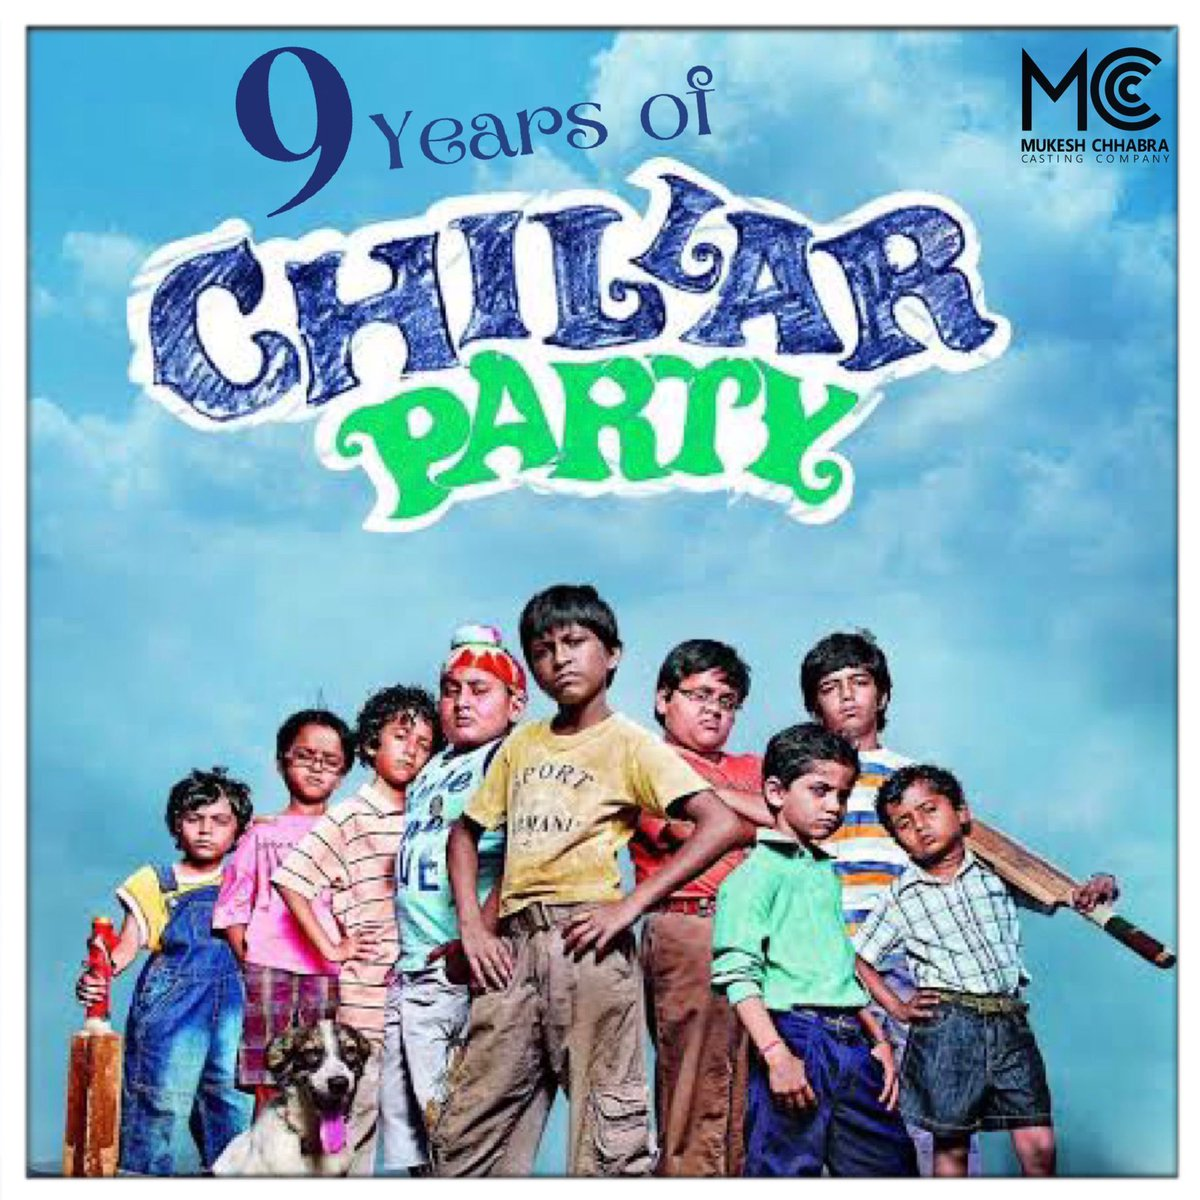 #9YearsOfChillarParty: All young talented kids squad who won the National Award for Best Children's Film (2011). #ChillarParty is jointly produced by @UTVFilms /@SKFilmsOfficial & marks the directorial debut of #VikasBahl & #NitishTiwari who later made Dangal, Super30, Queen etc. https://t.co/2G2UuILXMK